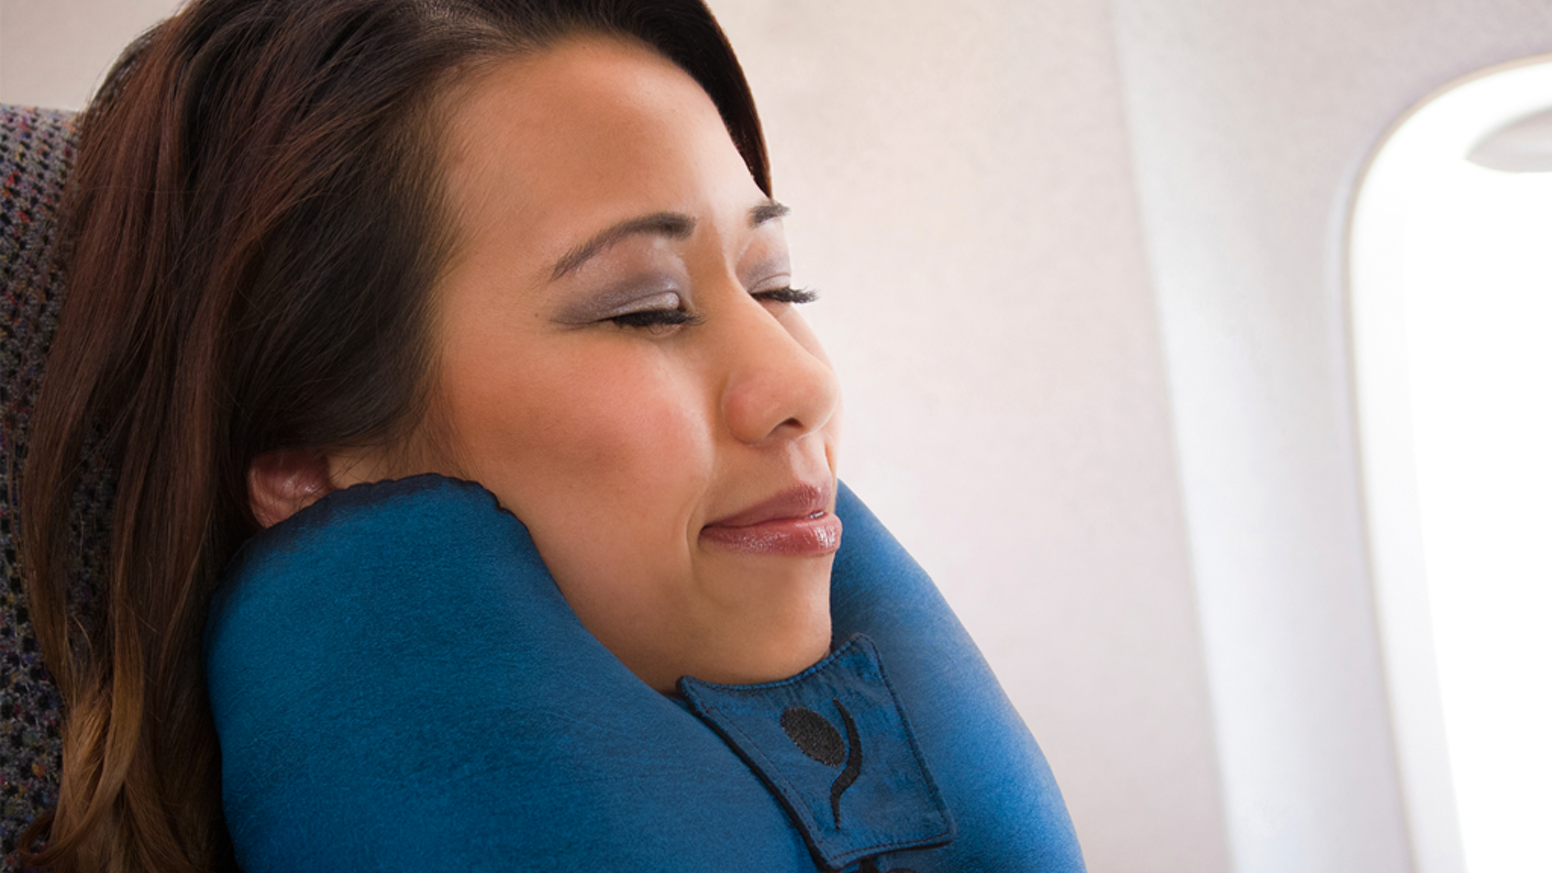 Travel has evolved. Your travel pillow should evolve with it.